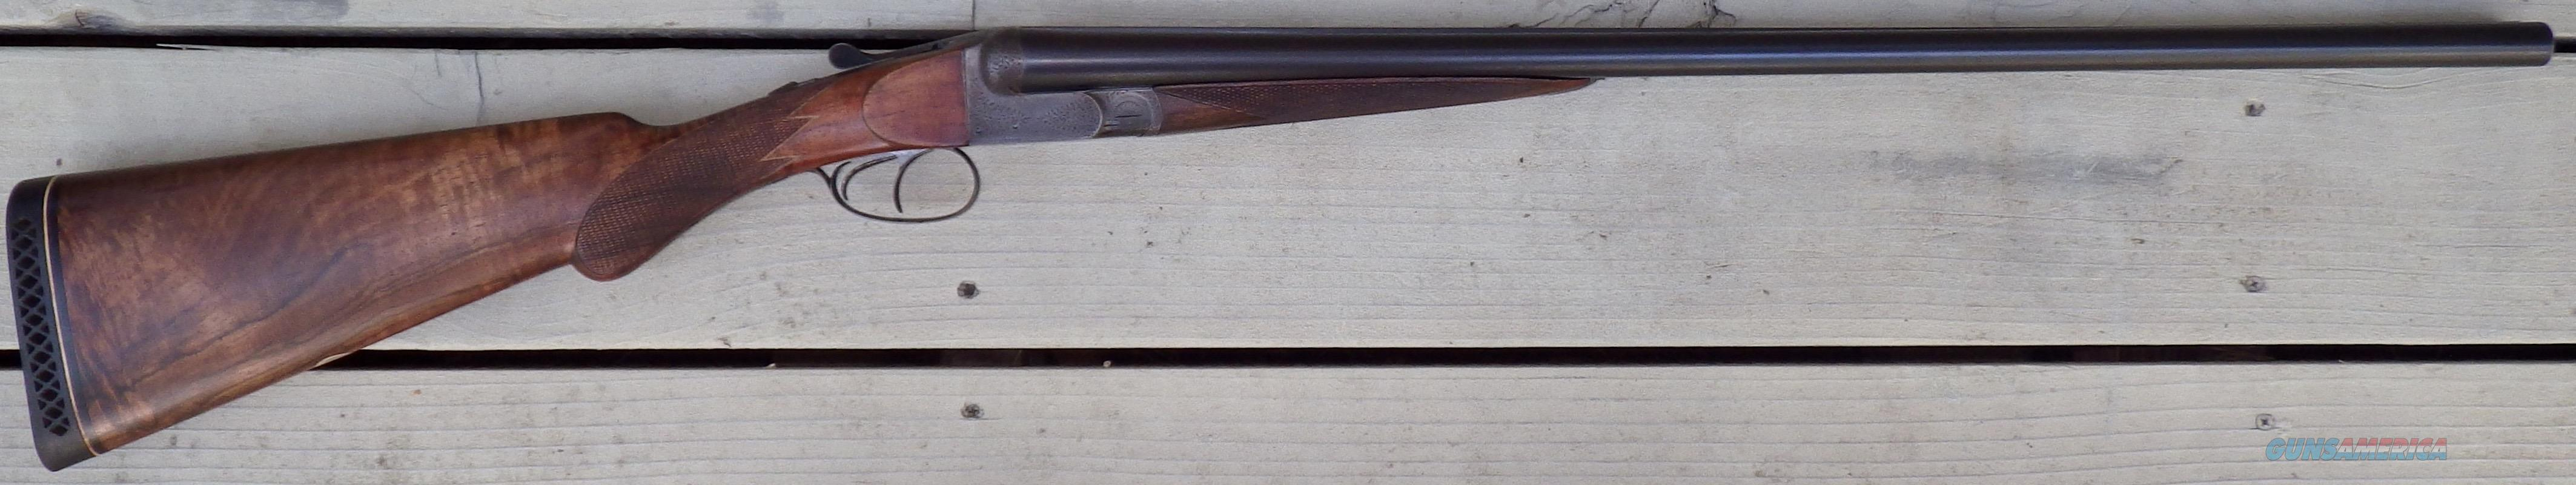 Lebeau-Courally SxS 12 gauge, ejectors, 2.75-inch, 27.5-inch, long LOP  Guns > Shotguns > Double Shotguns (Misc.)  > Belgian